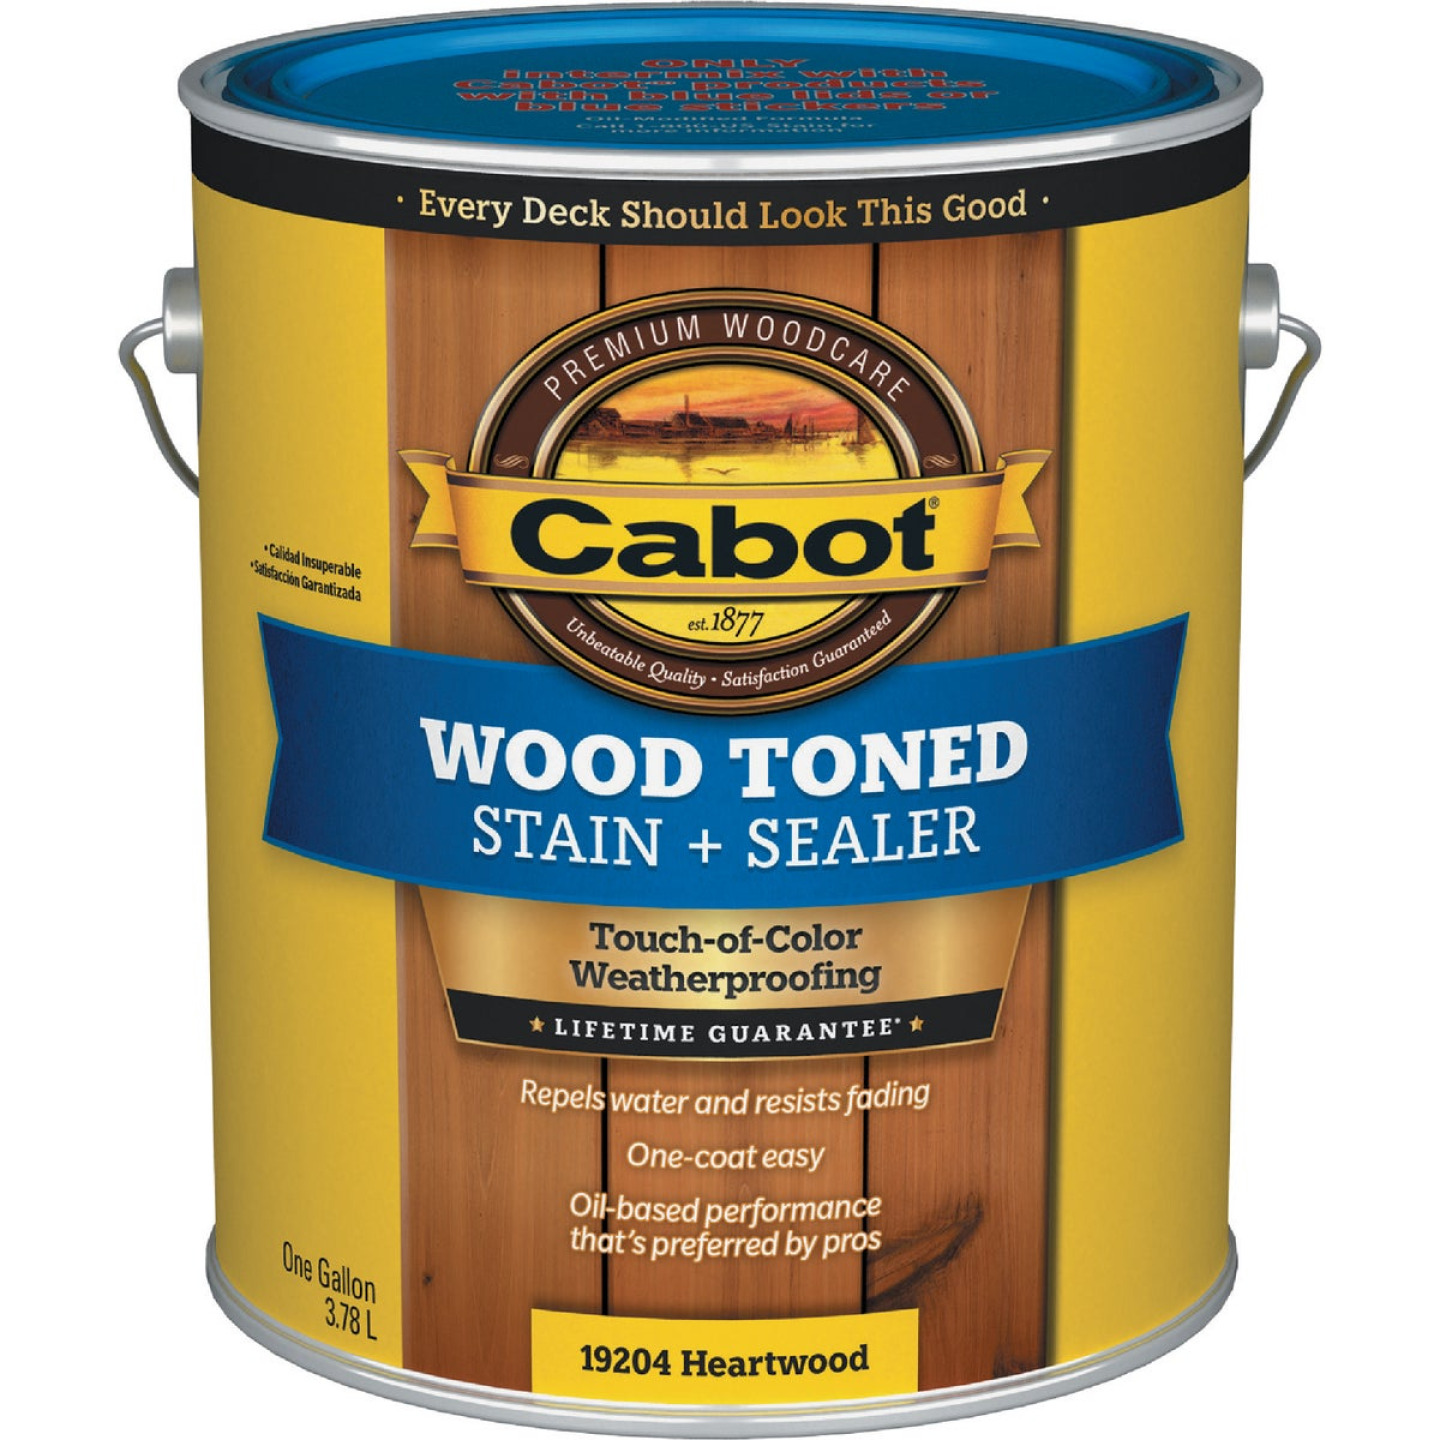 Cabot VOC Wood Toned Deck & Siding Exterior Stain, Heartwood, 1 Gal. Image 1